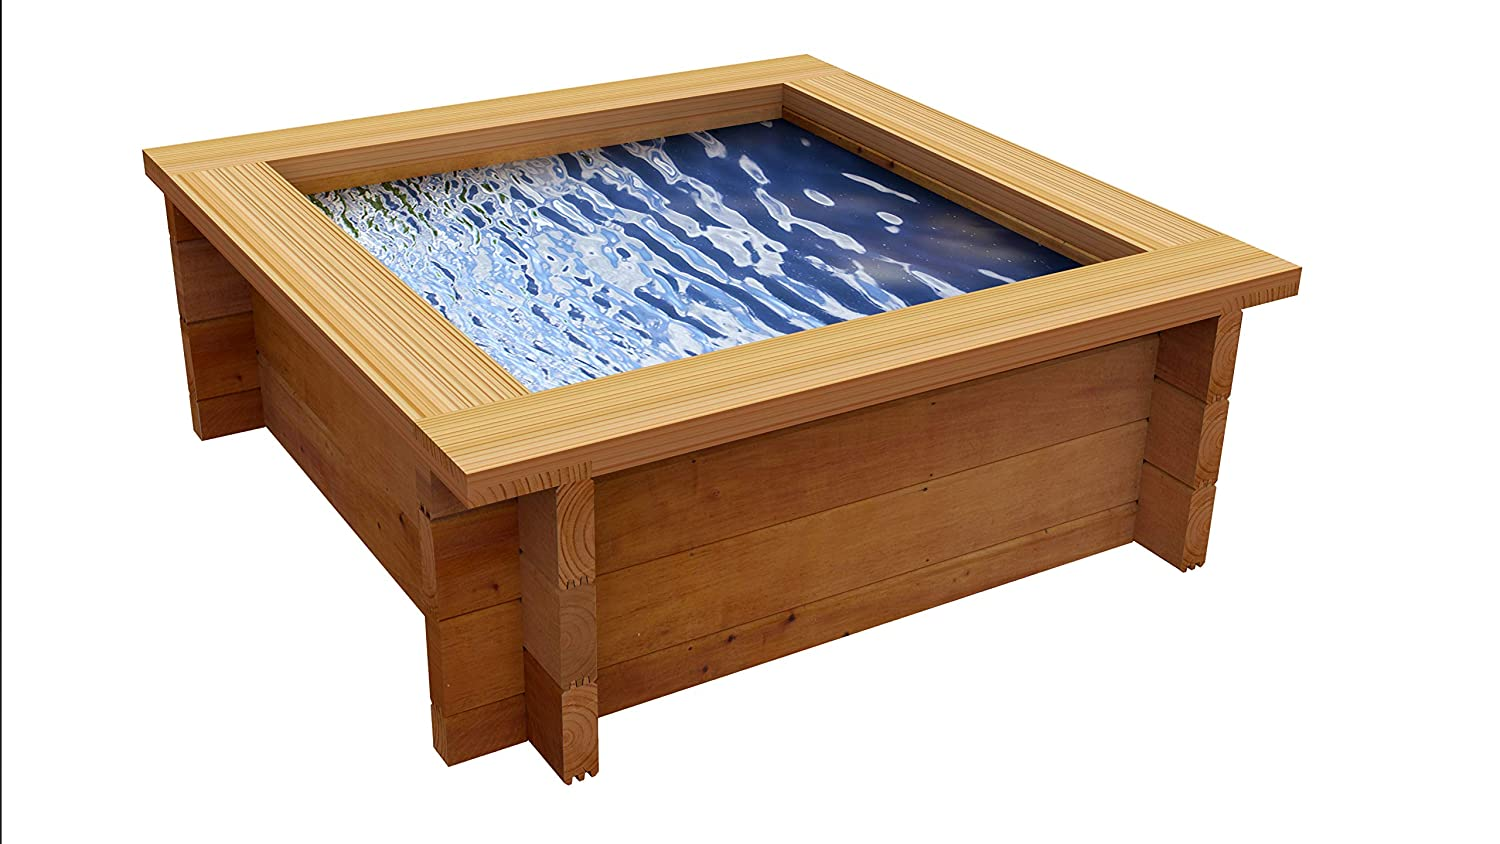 16in Quickcrop Raised Ponds With Liner 4ft x 4ft (16in)